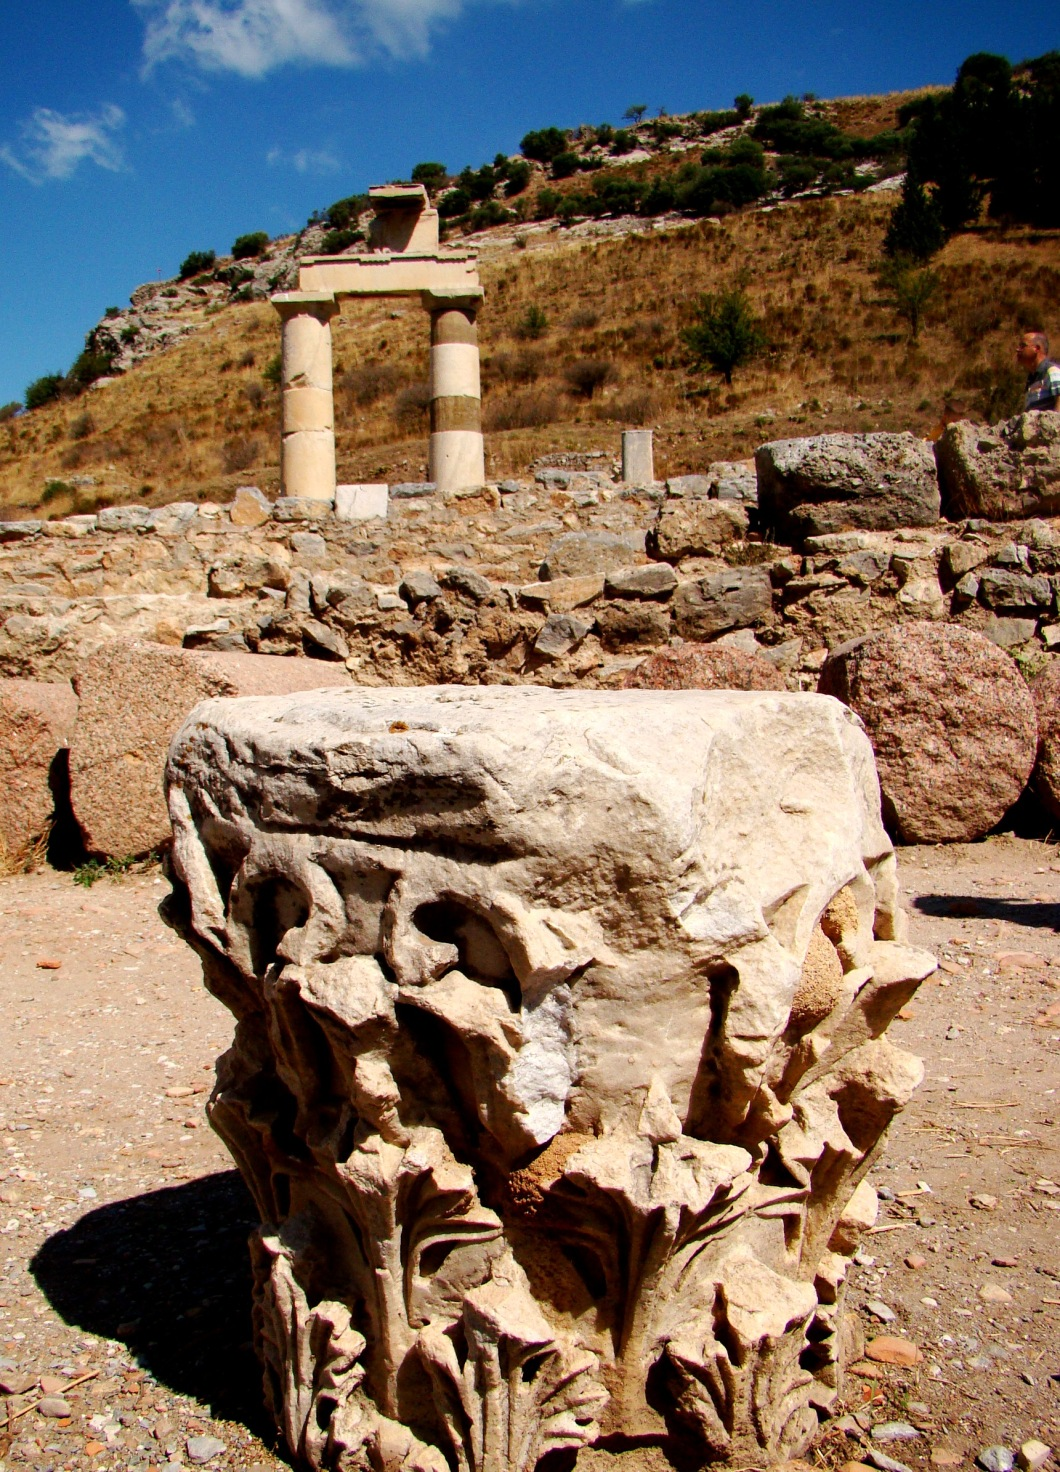 Behind the basilica is the Prytaneion, where religious ceremonies , official receptions and banquets were held. The sacred flame symbolizing the heart of Ephesus was kept constantly alight in the Prytaneion.